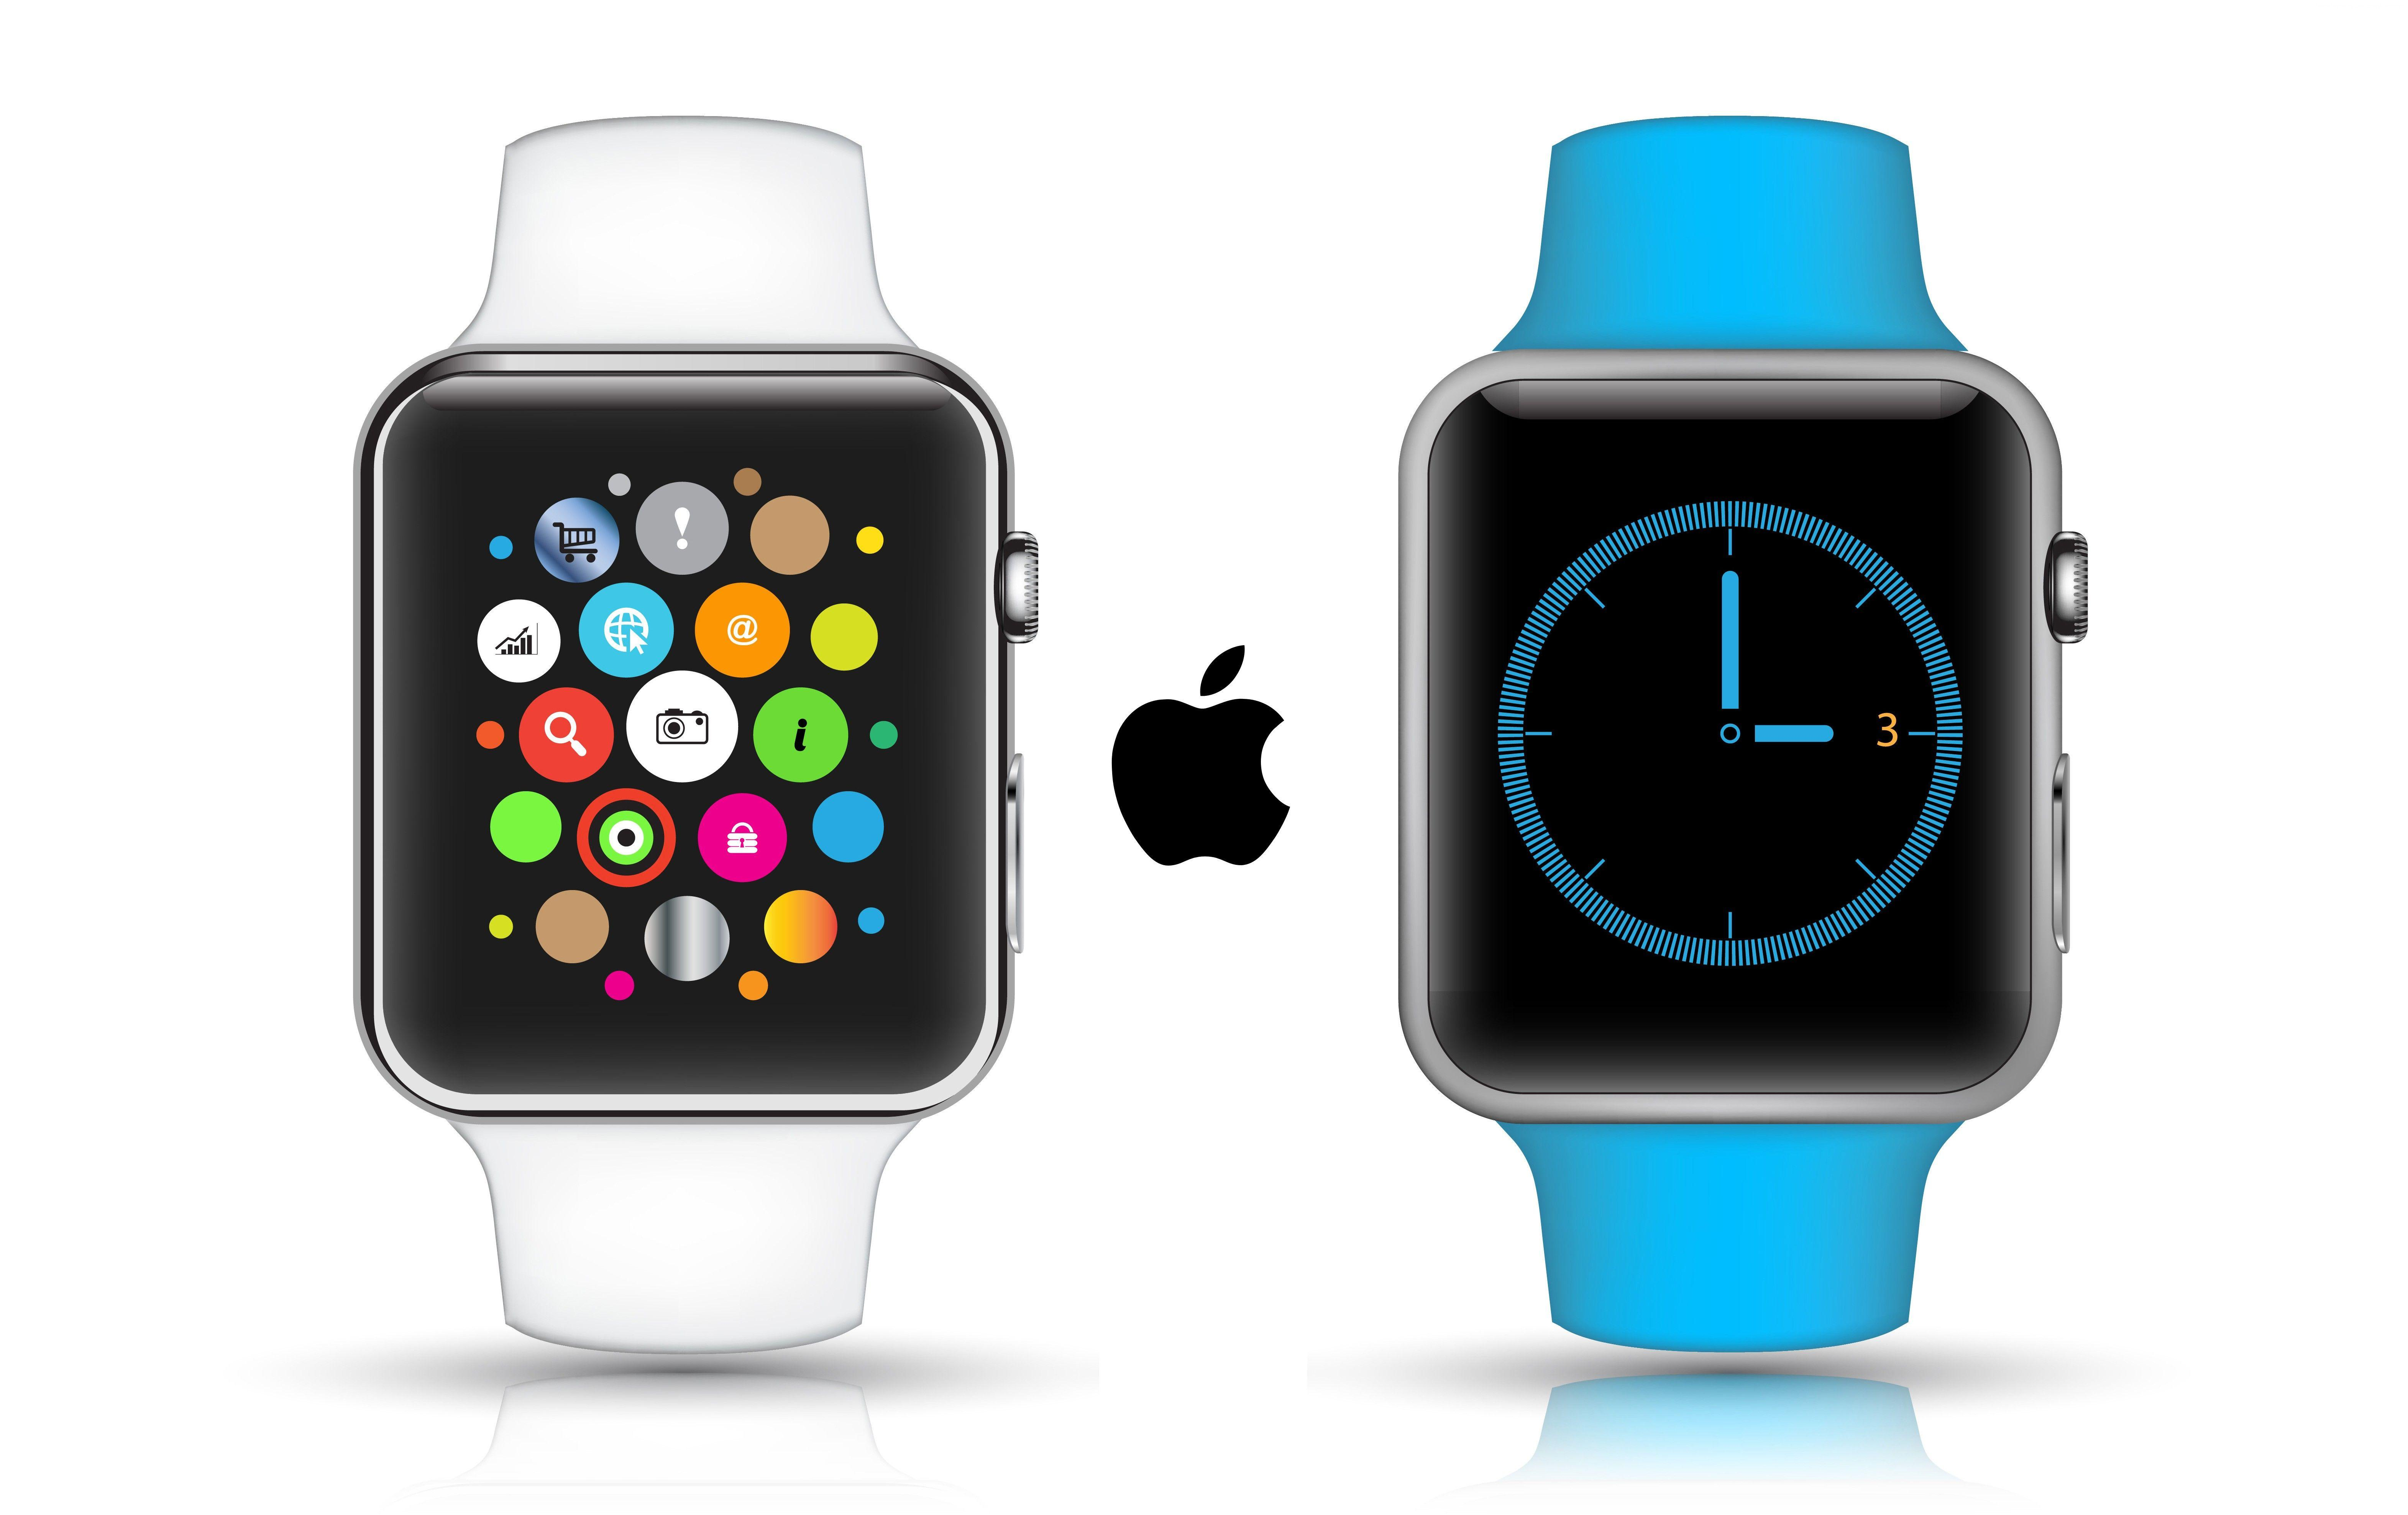 Wallpapers Apple Watch watches wallpapers k k review iWatch